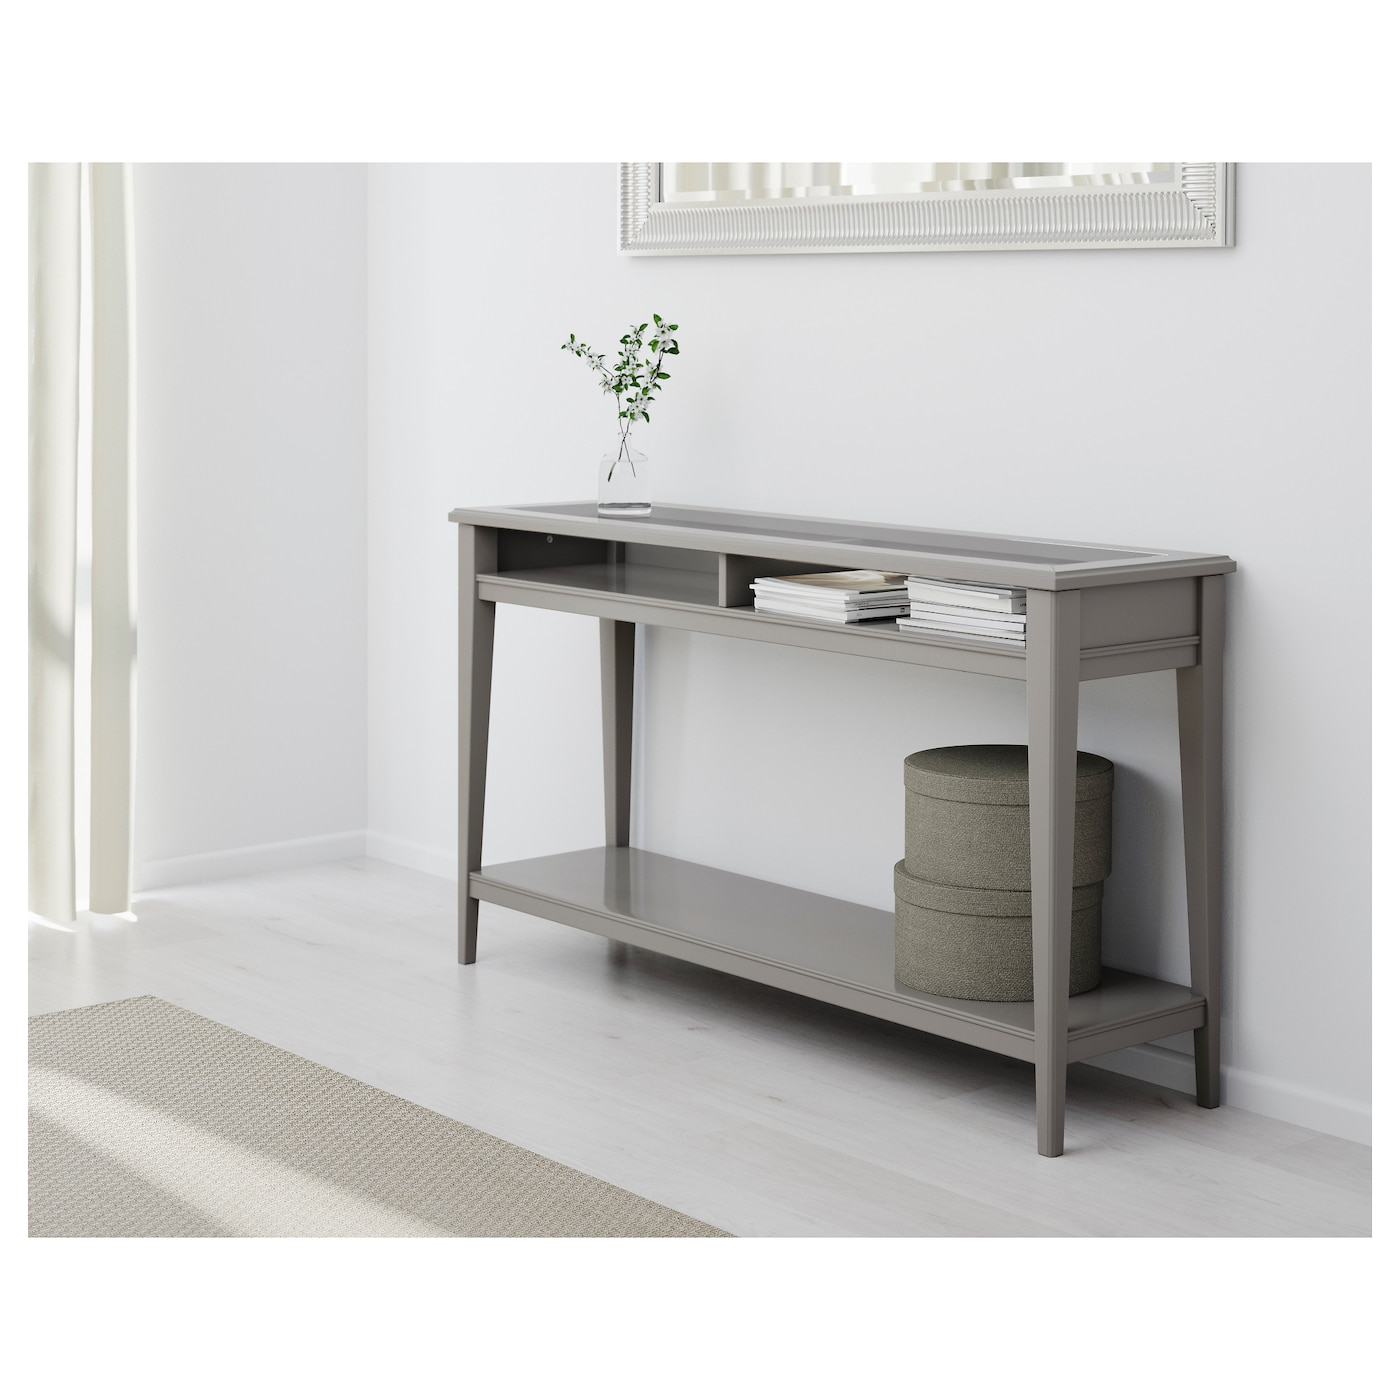 5 Console Table ~ Liatorp console table grey glass cm ikea